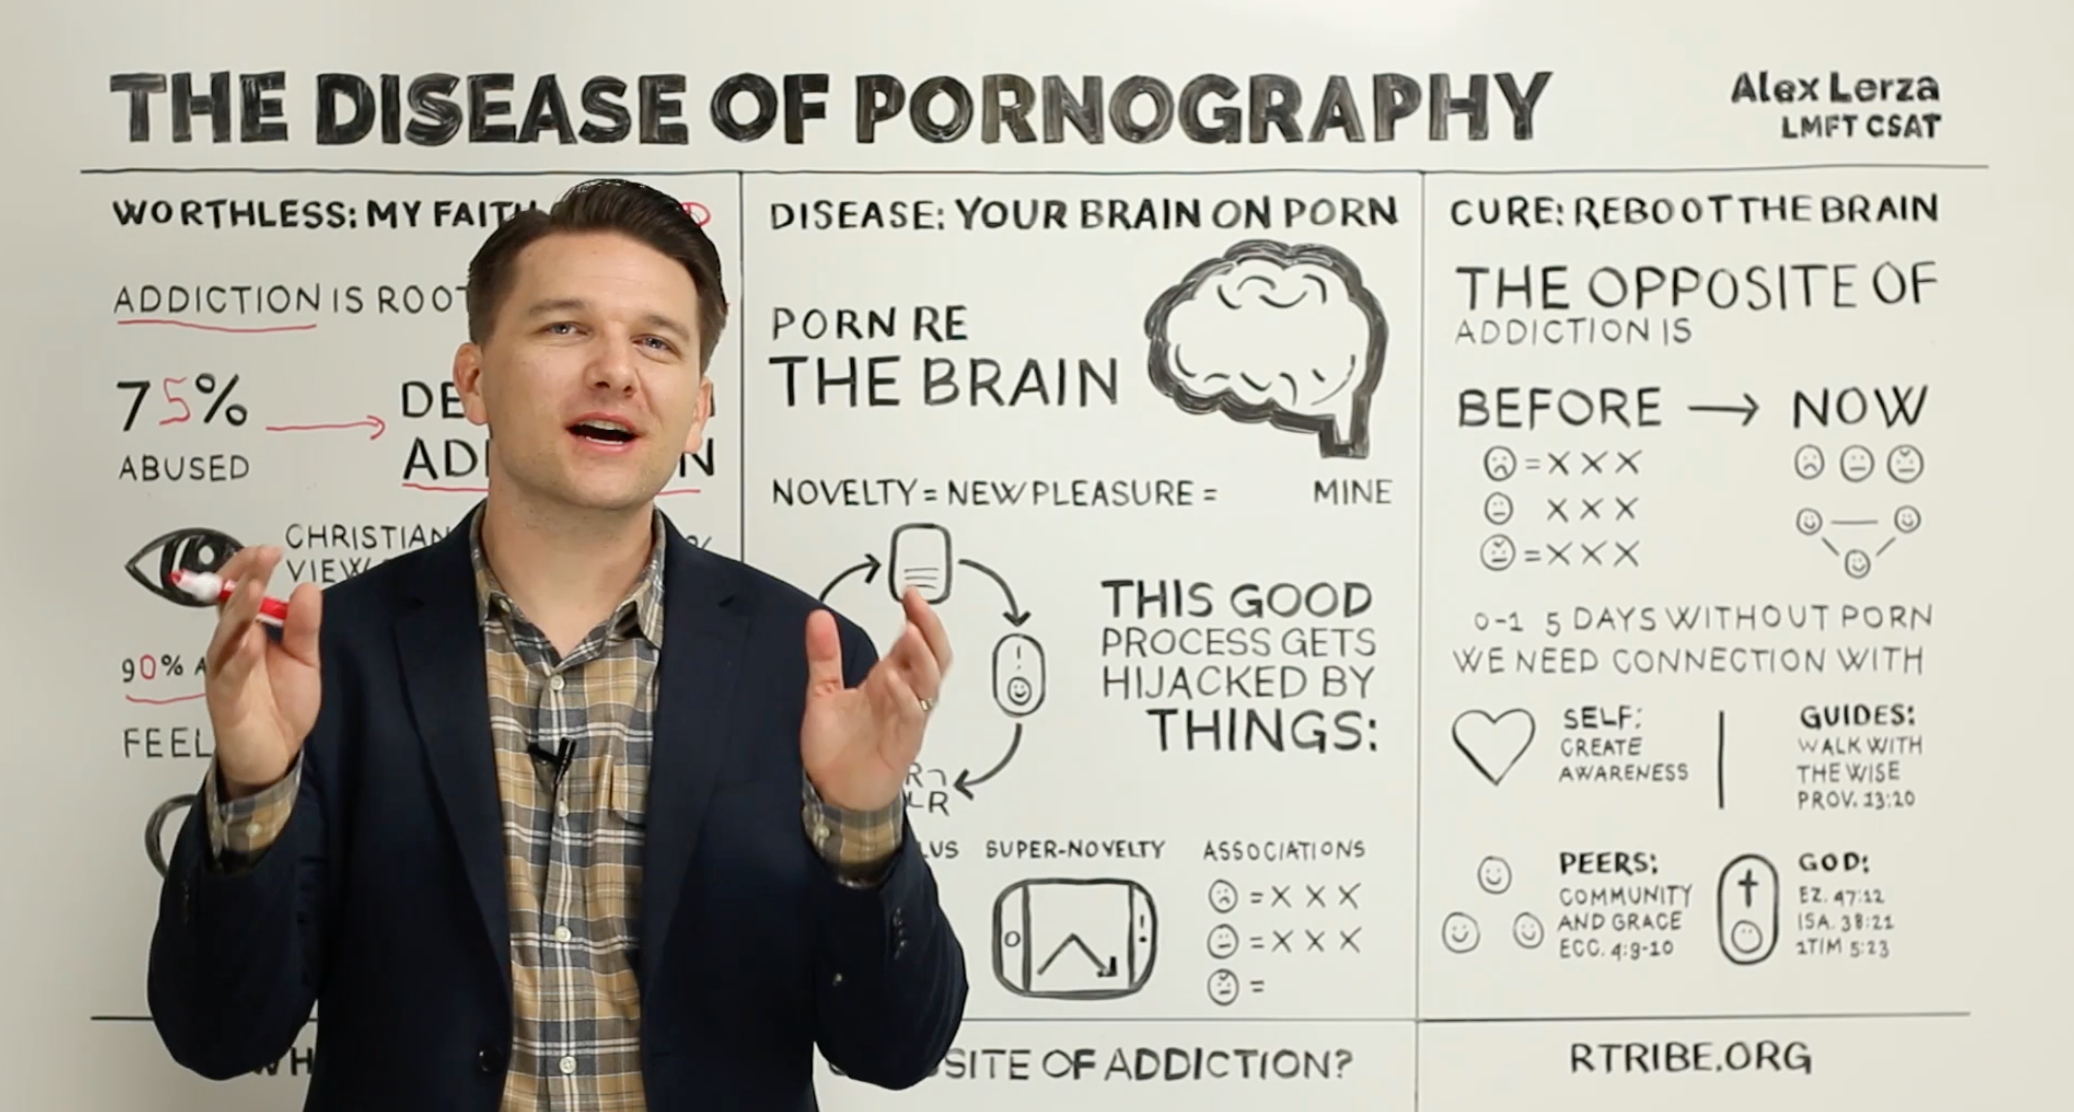 3 Ways Porn Rewires the Brain - Axis Video